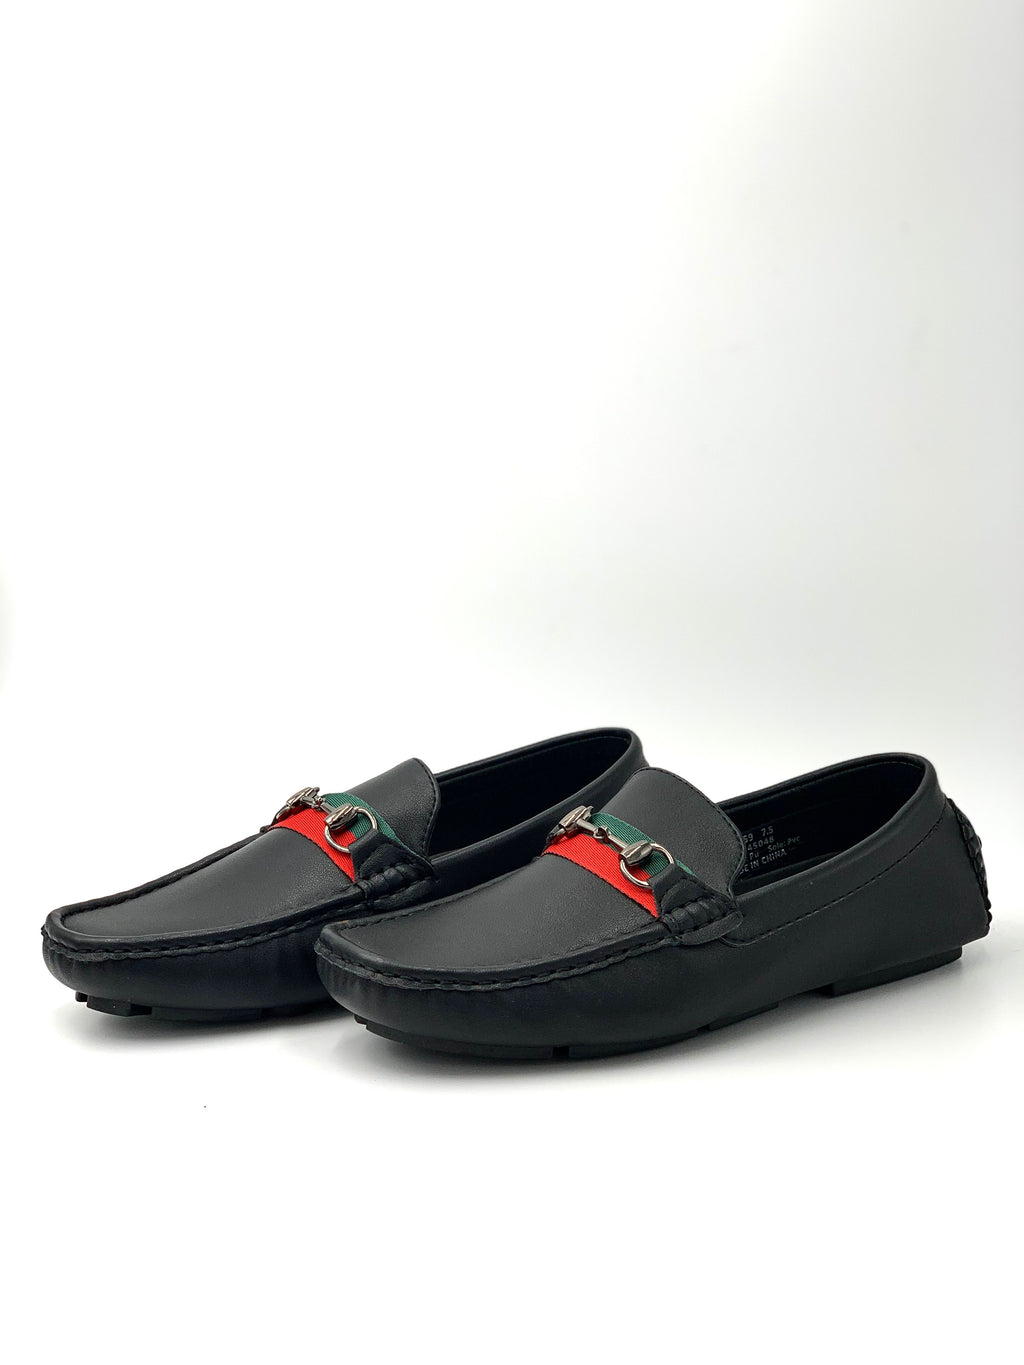 Double Stripe Horsebit Buckle Driving Loafer